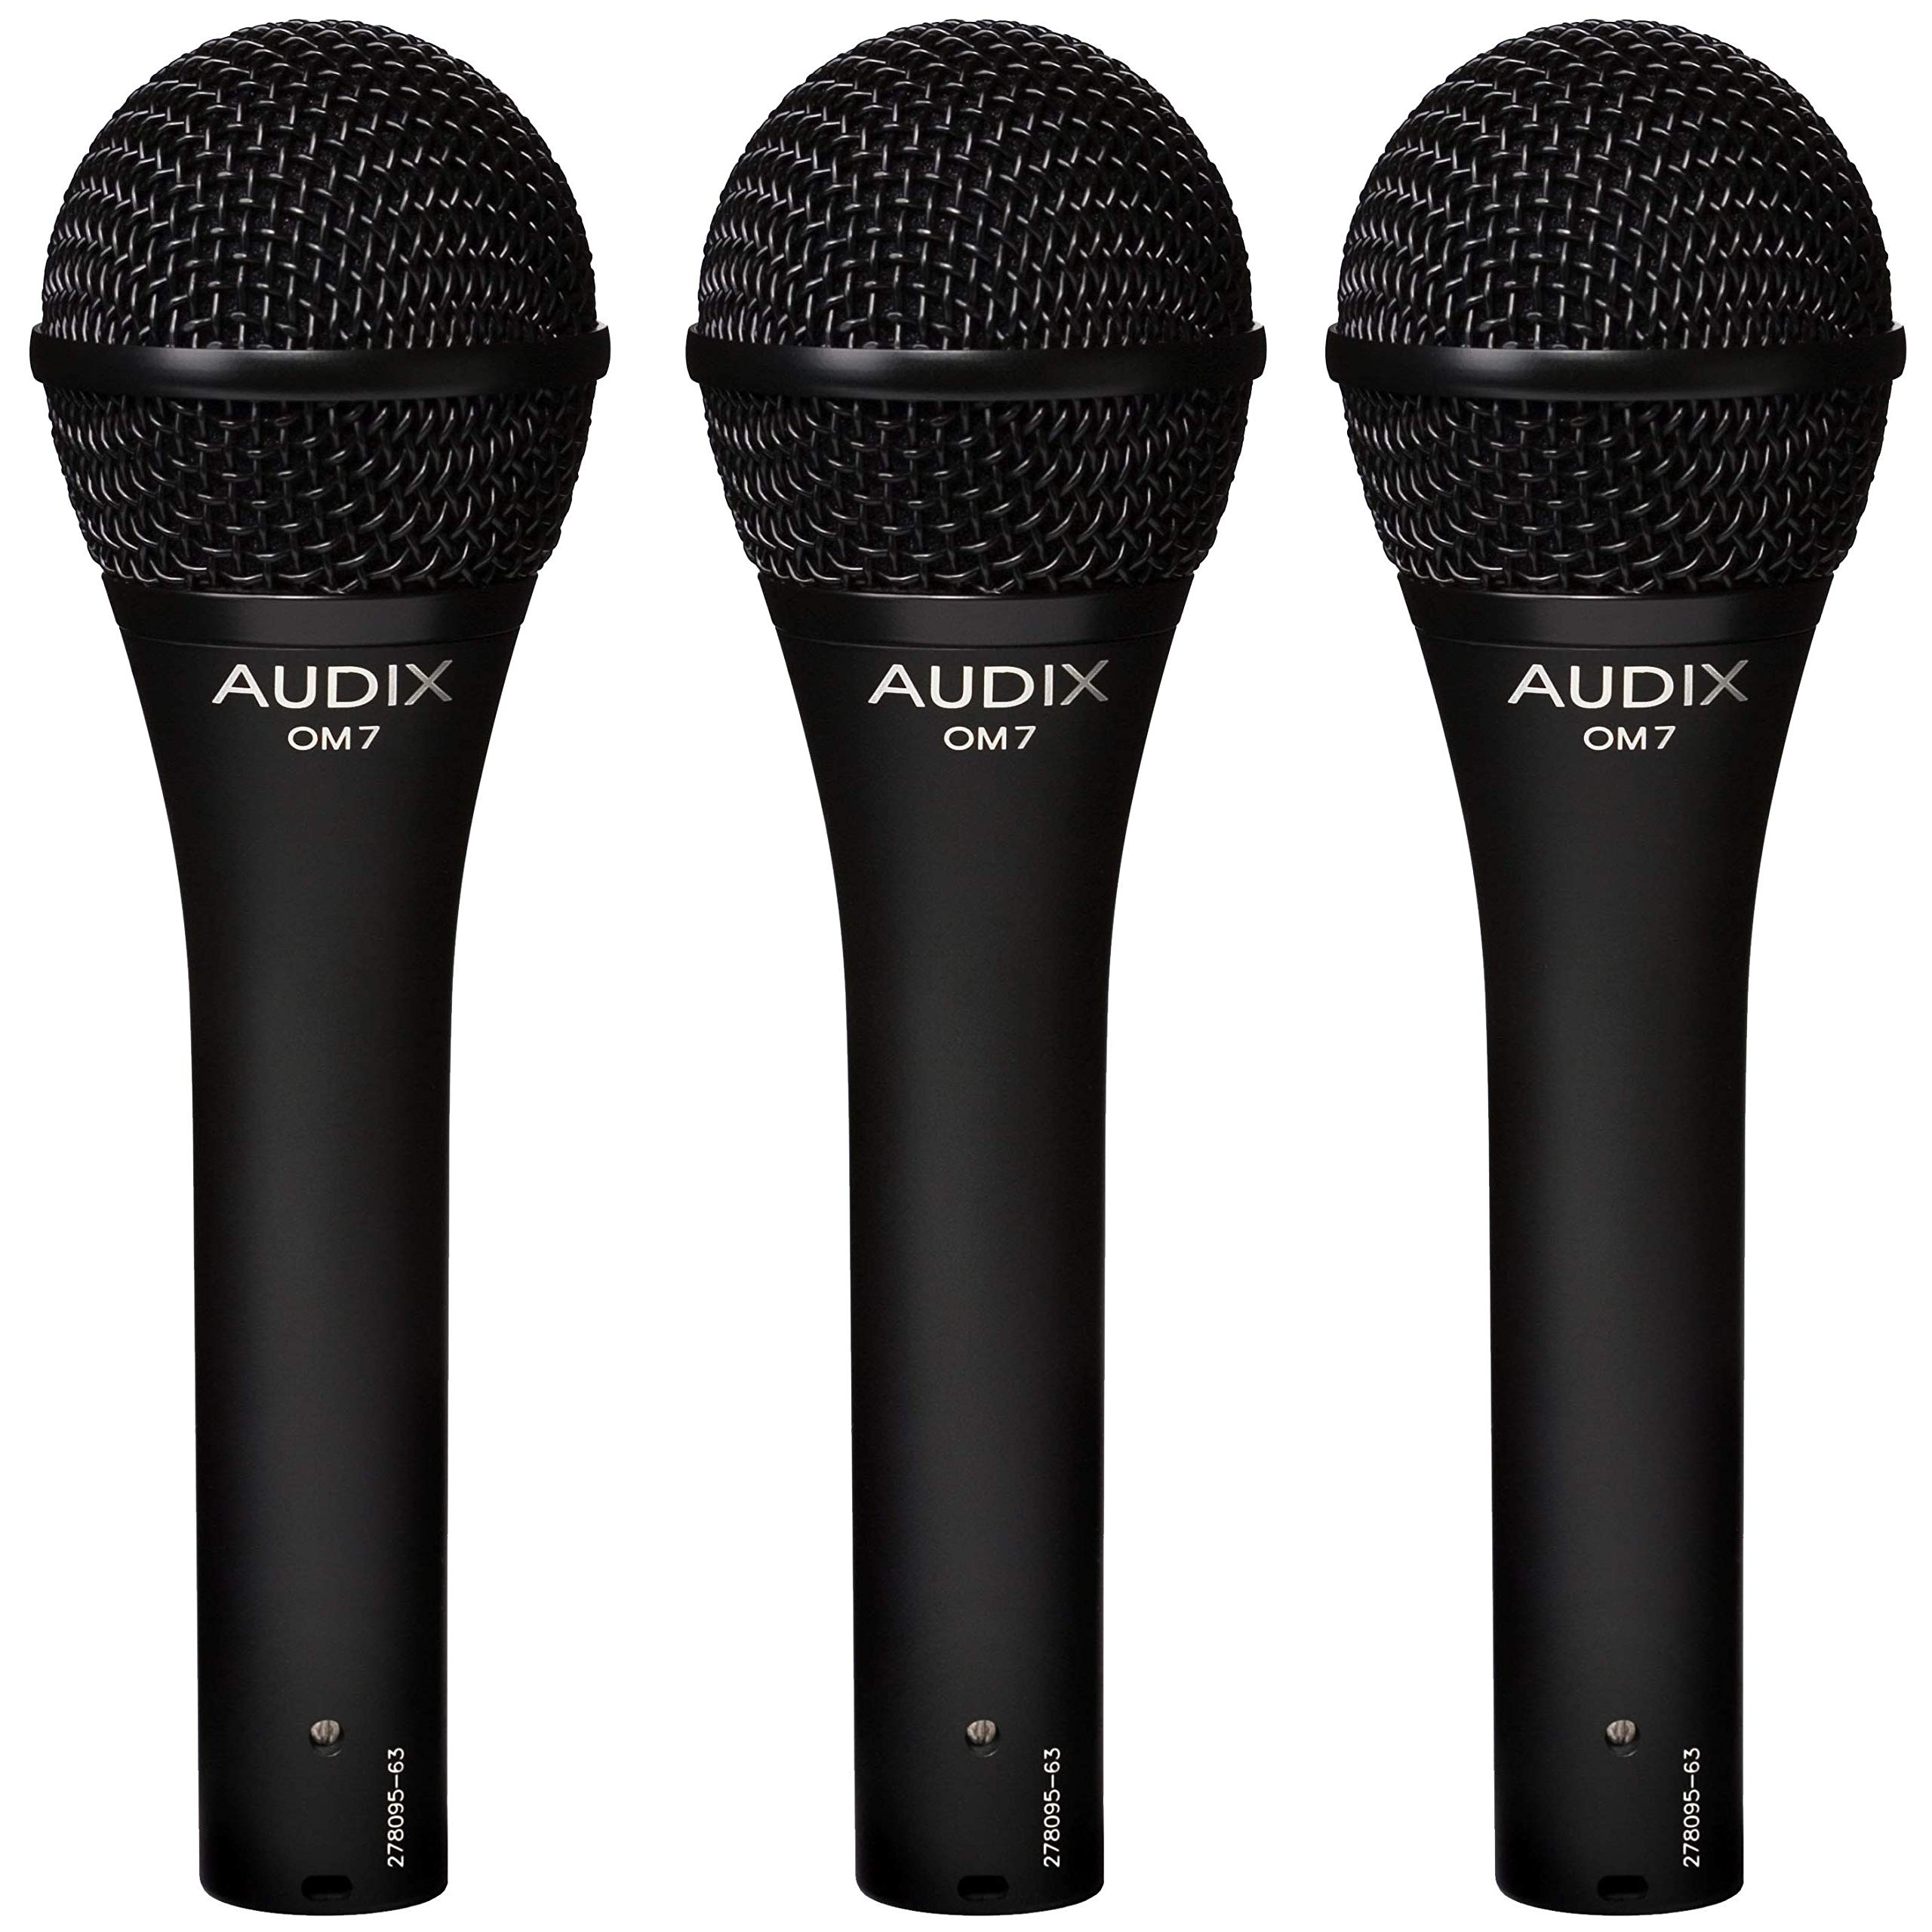 Audix OM7 Trio Dynamic Vocal Microphones by AUDIX